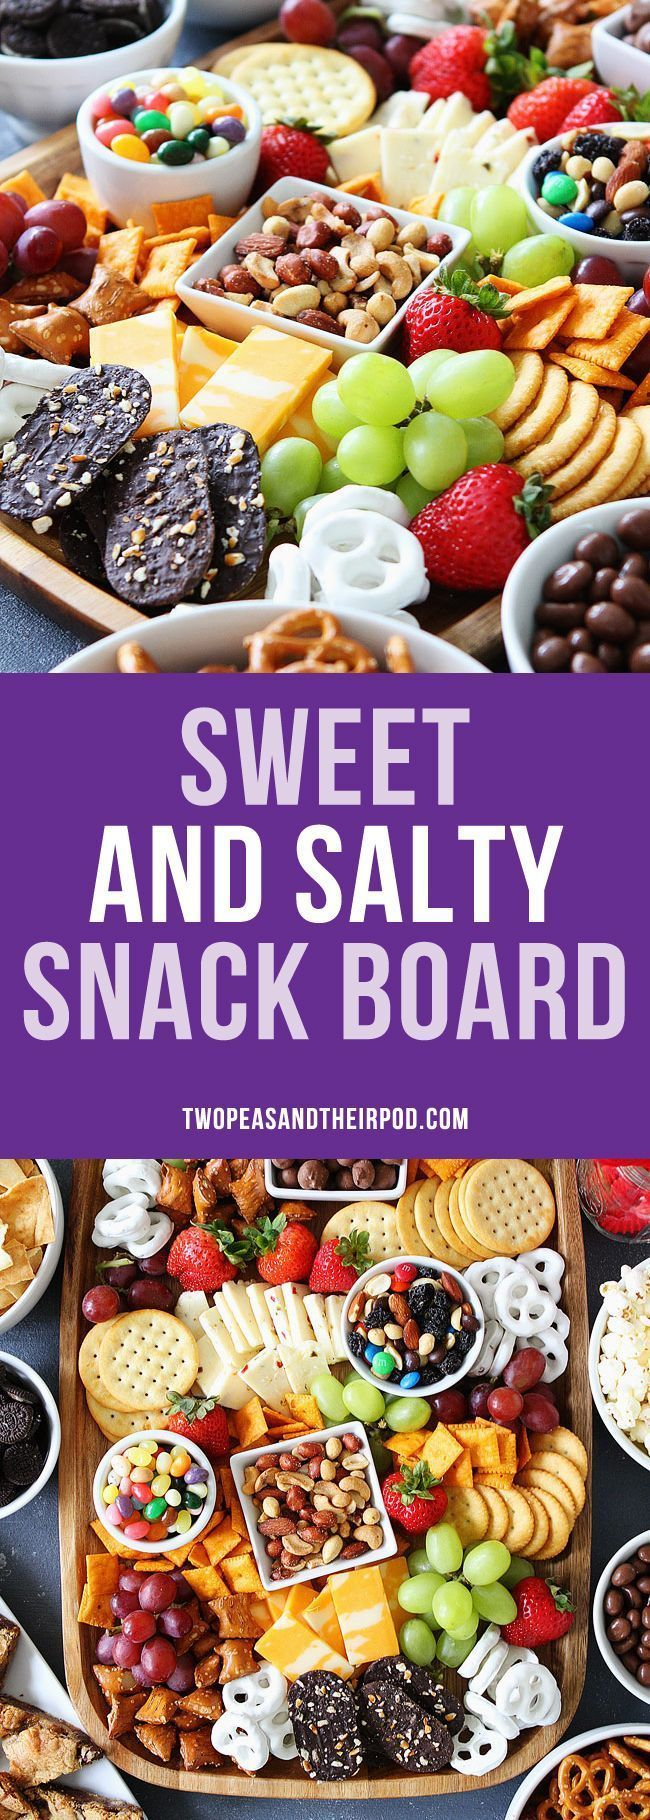 How to Make a Sweet and Salty Snack Board for parties! This snack spread is perfect for game day or any party. The perfect party food for easy entertaining. #party #entertaining #snacks